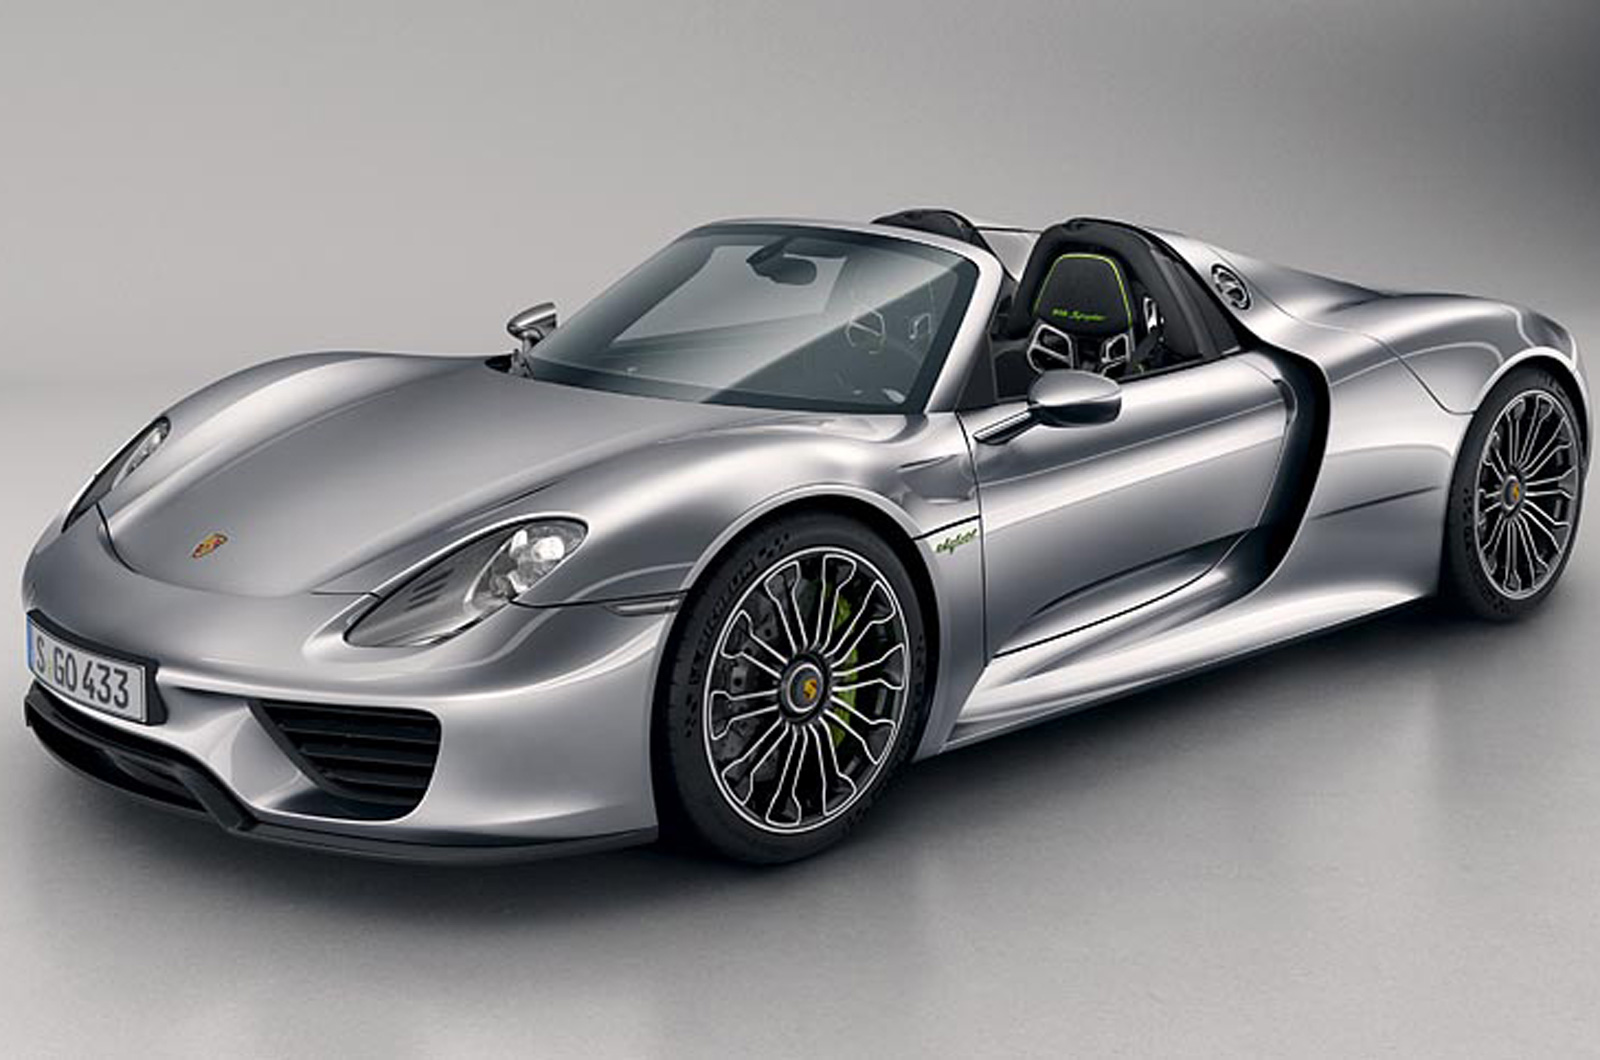 Porsche 918 Spyder photo gallery  Autocar India